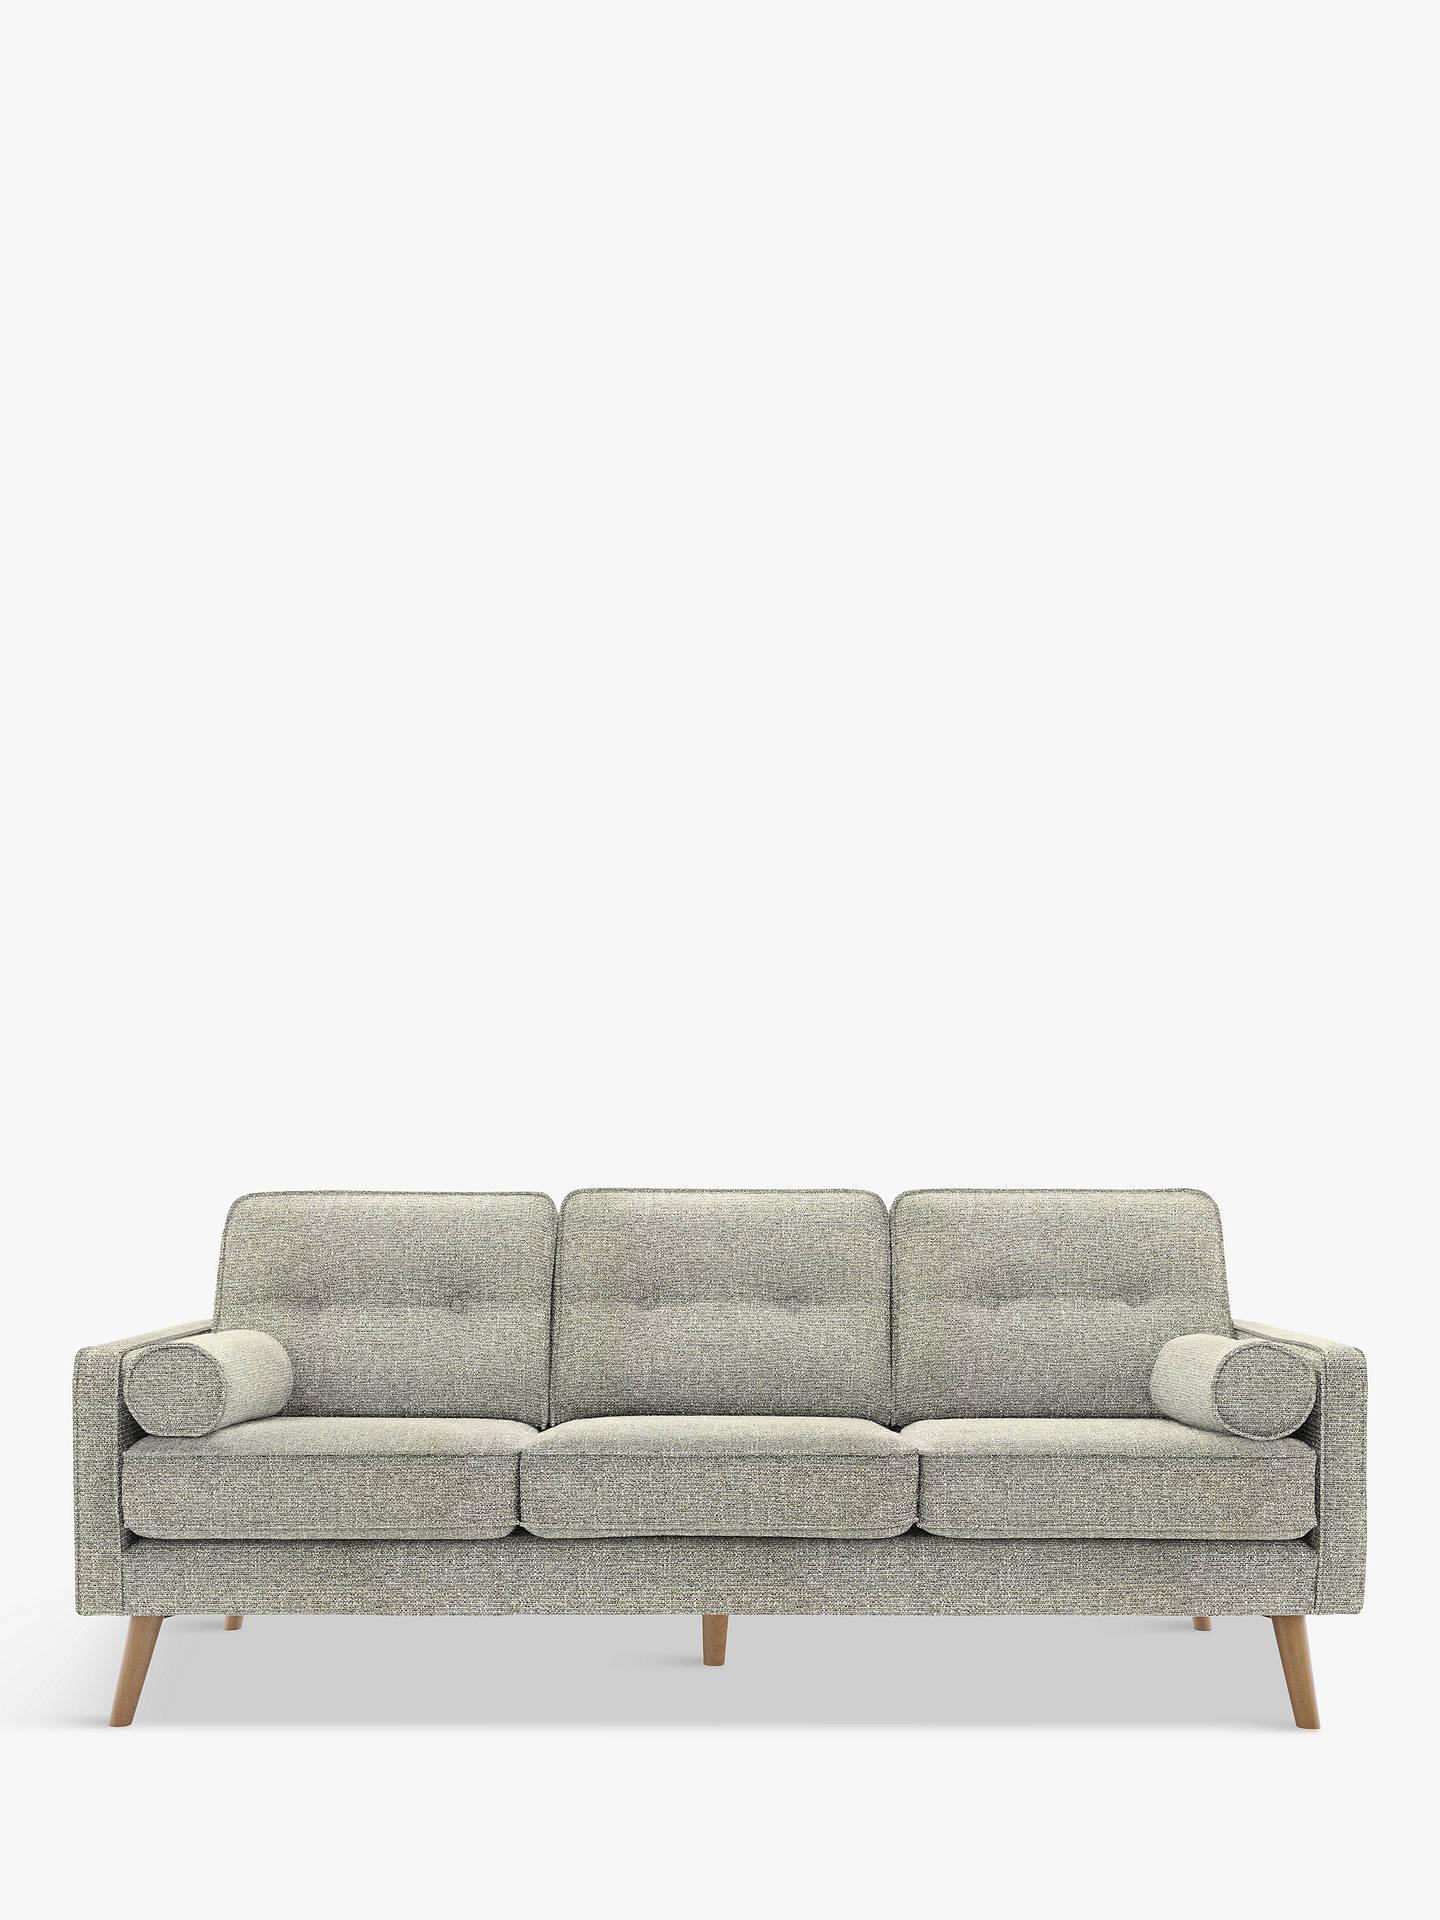 G Plan Vintage The Sixty Five Large 3 Seater Sofa Etch Granite